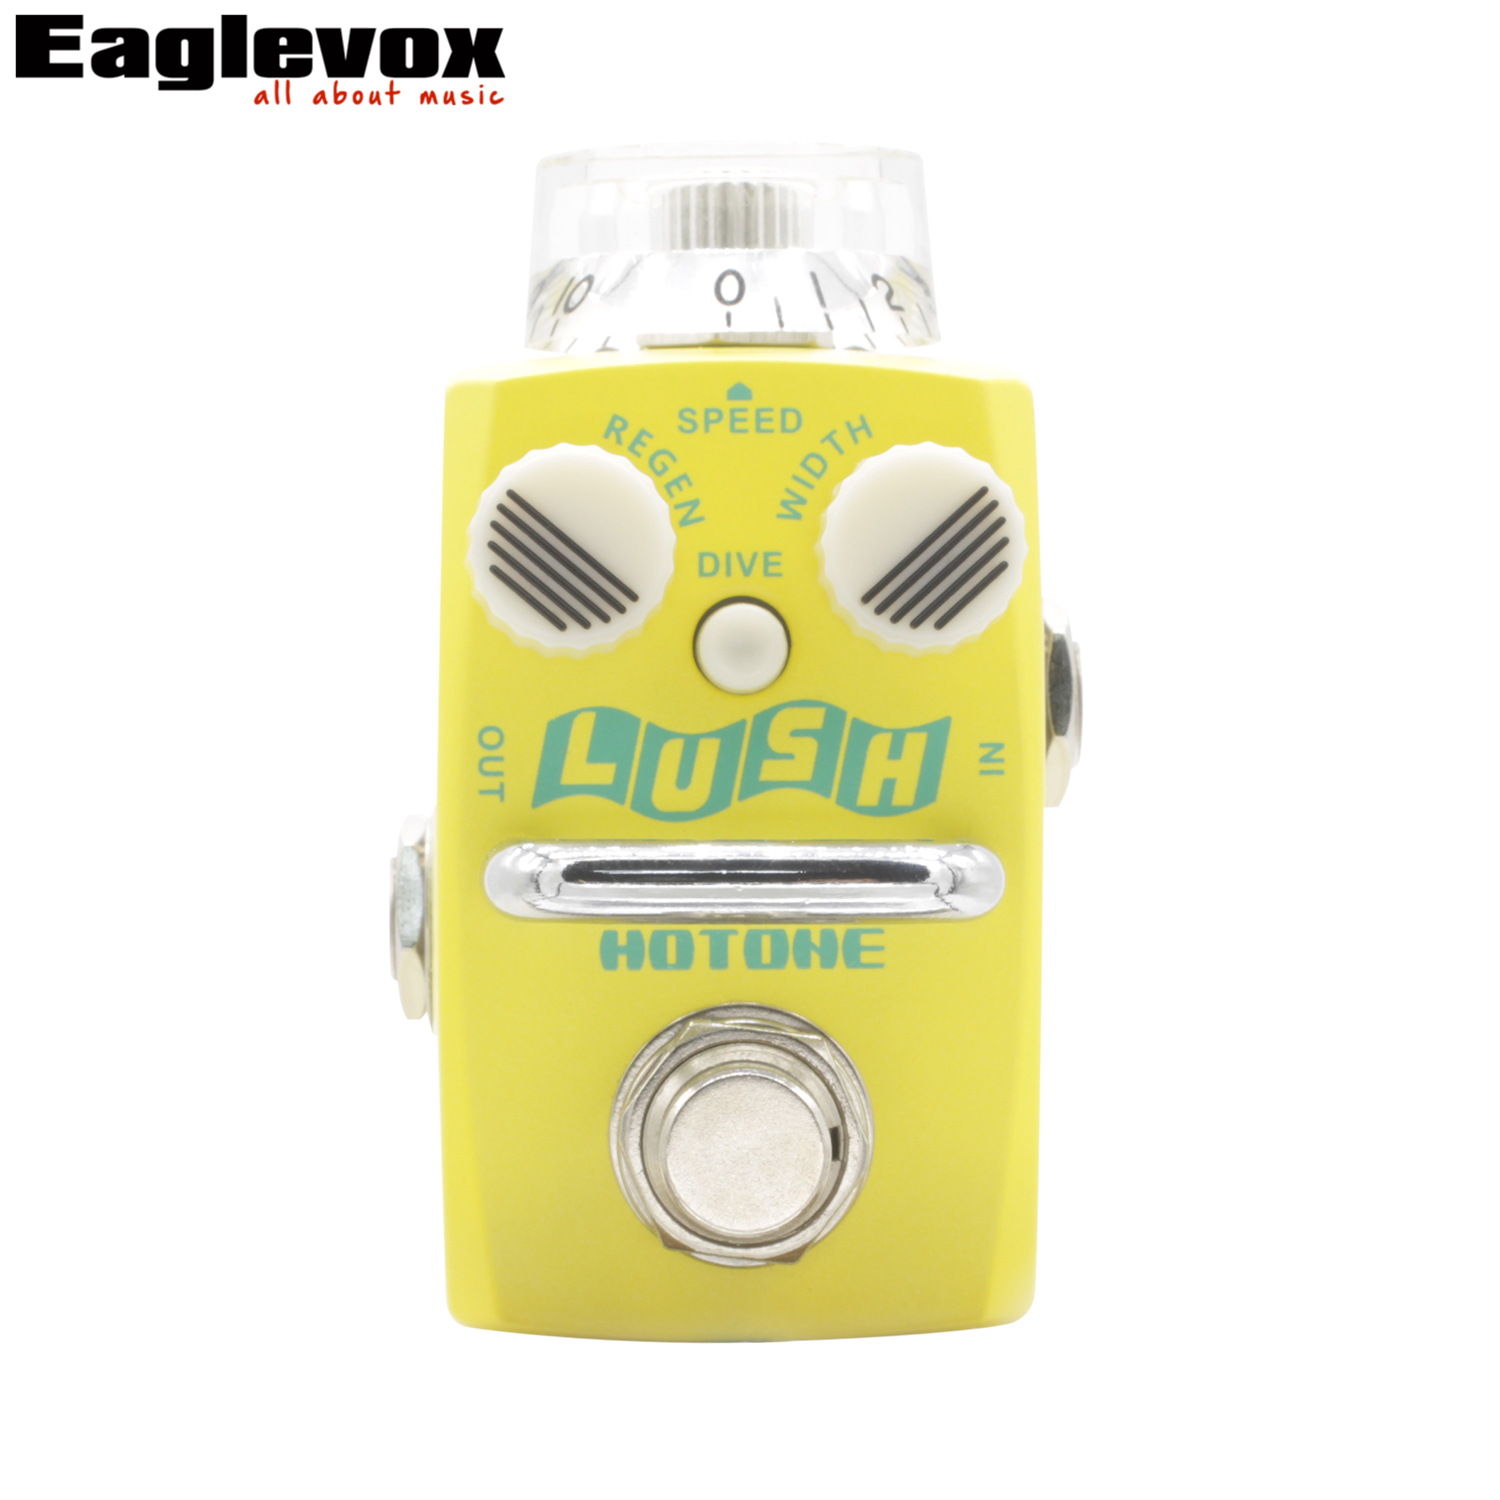 Hotone Lush Flanger Pedal For Guitar True Bypass lush flanger hotone extended onboard controls skyline дрипка wotofo lush rda